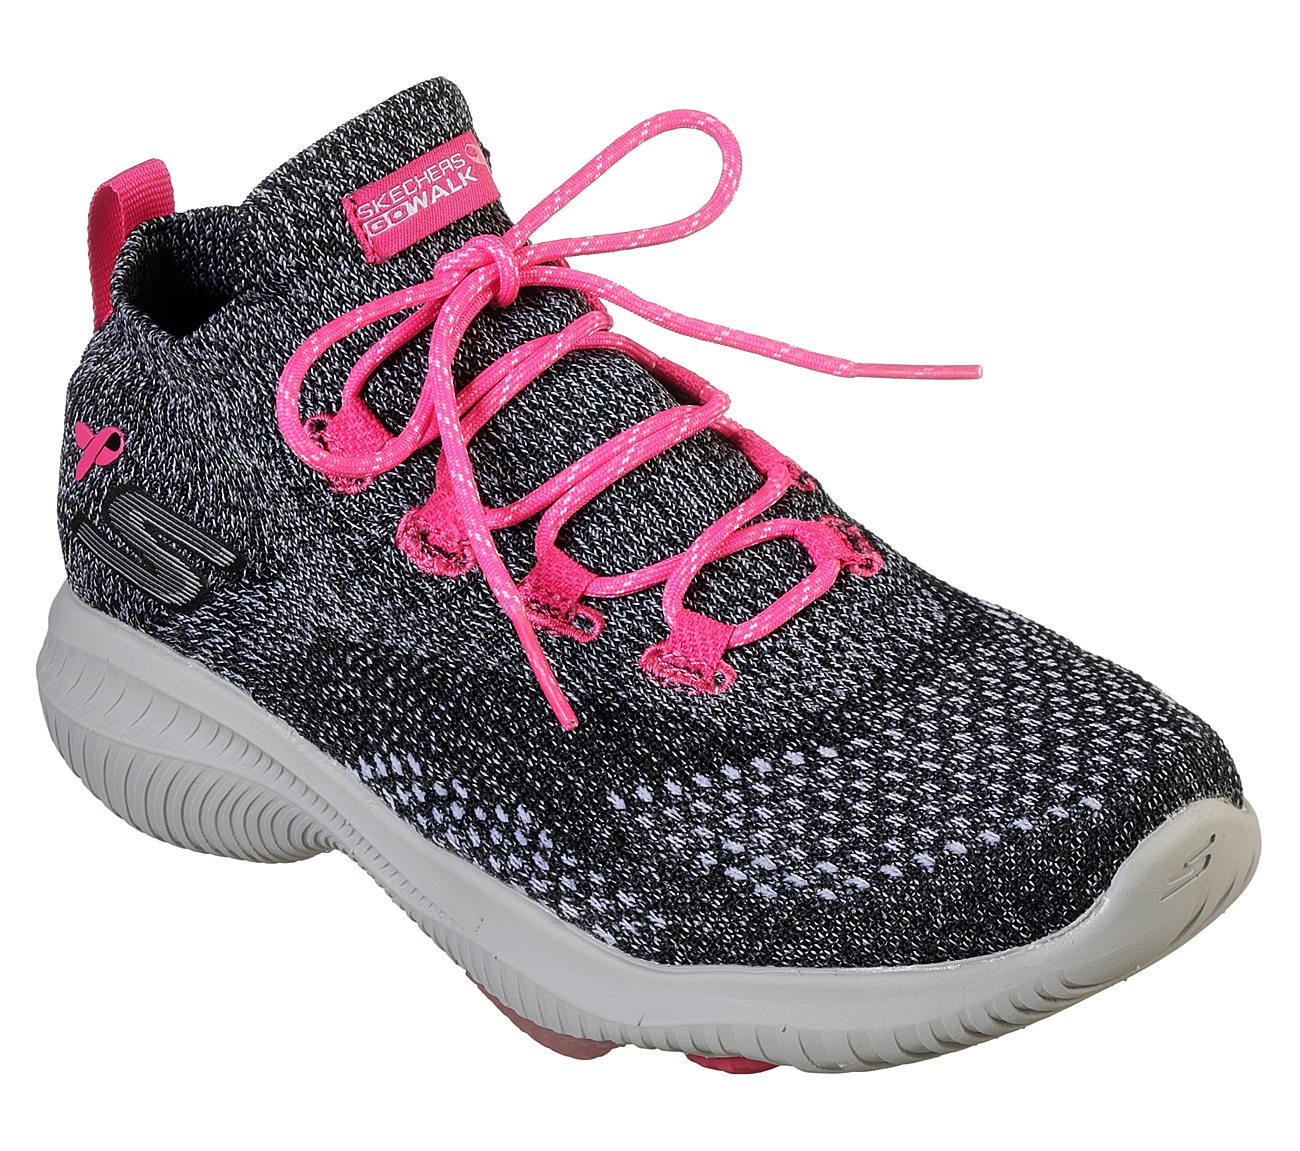 7cef28bb3289 Buy SKECHERS Skechers GOwalk Revolution Ultra - Hope Skechers ...